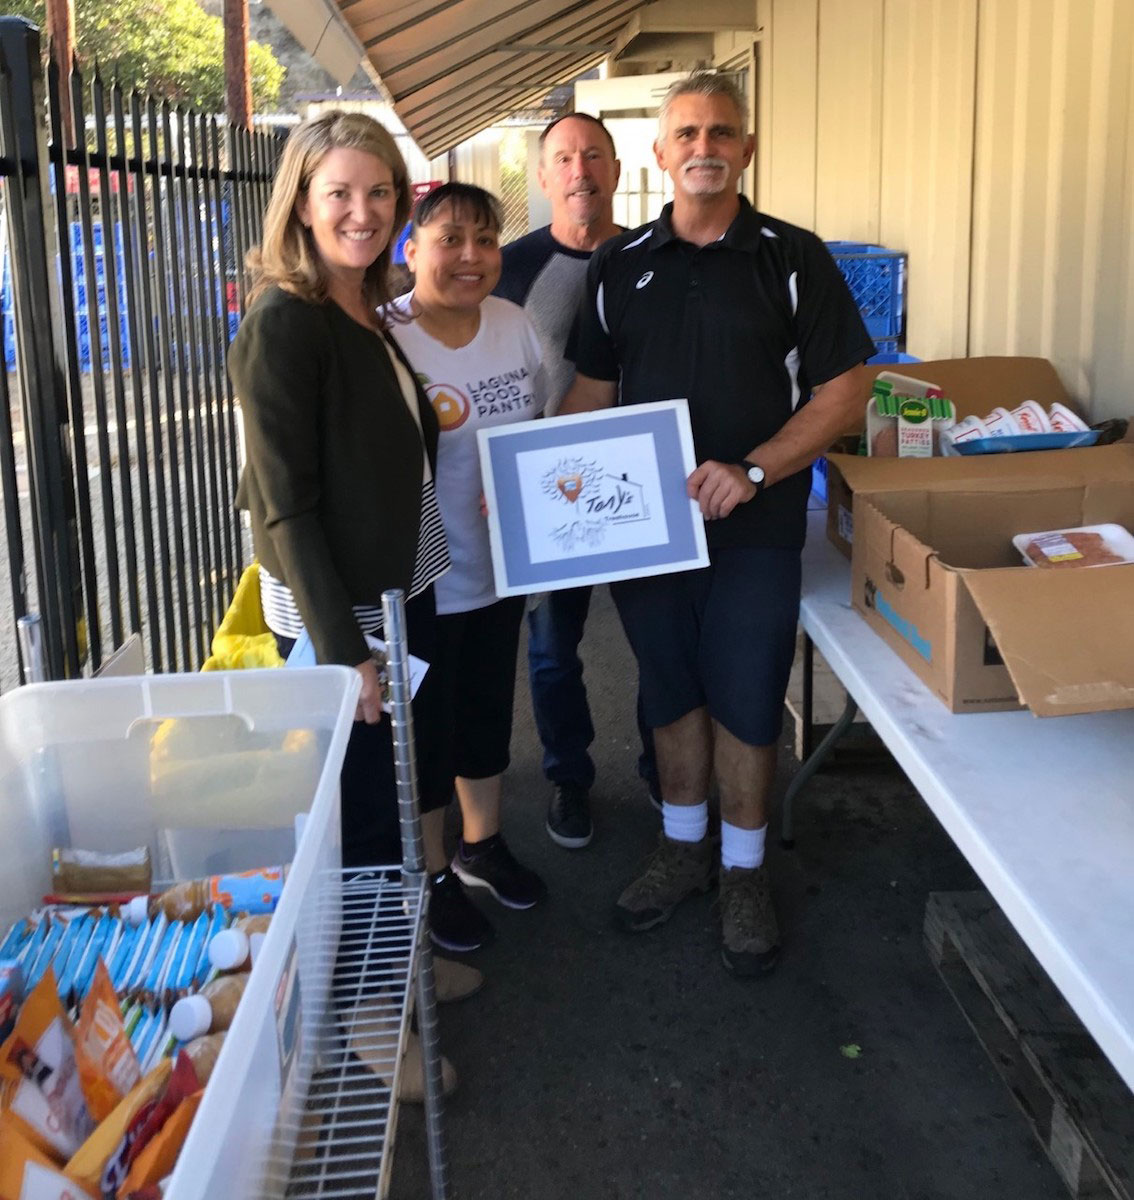 Tony's Treehouse donates to Laguna Food Pantry to meet needs of holidays